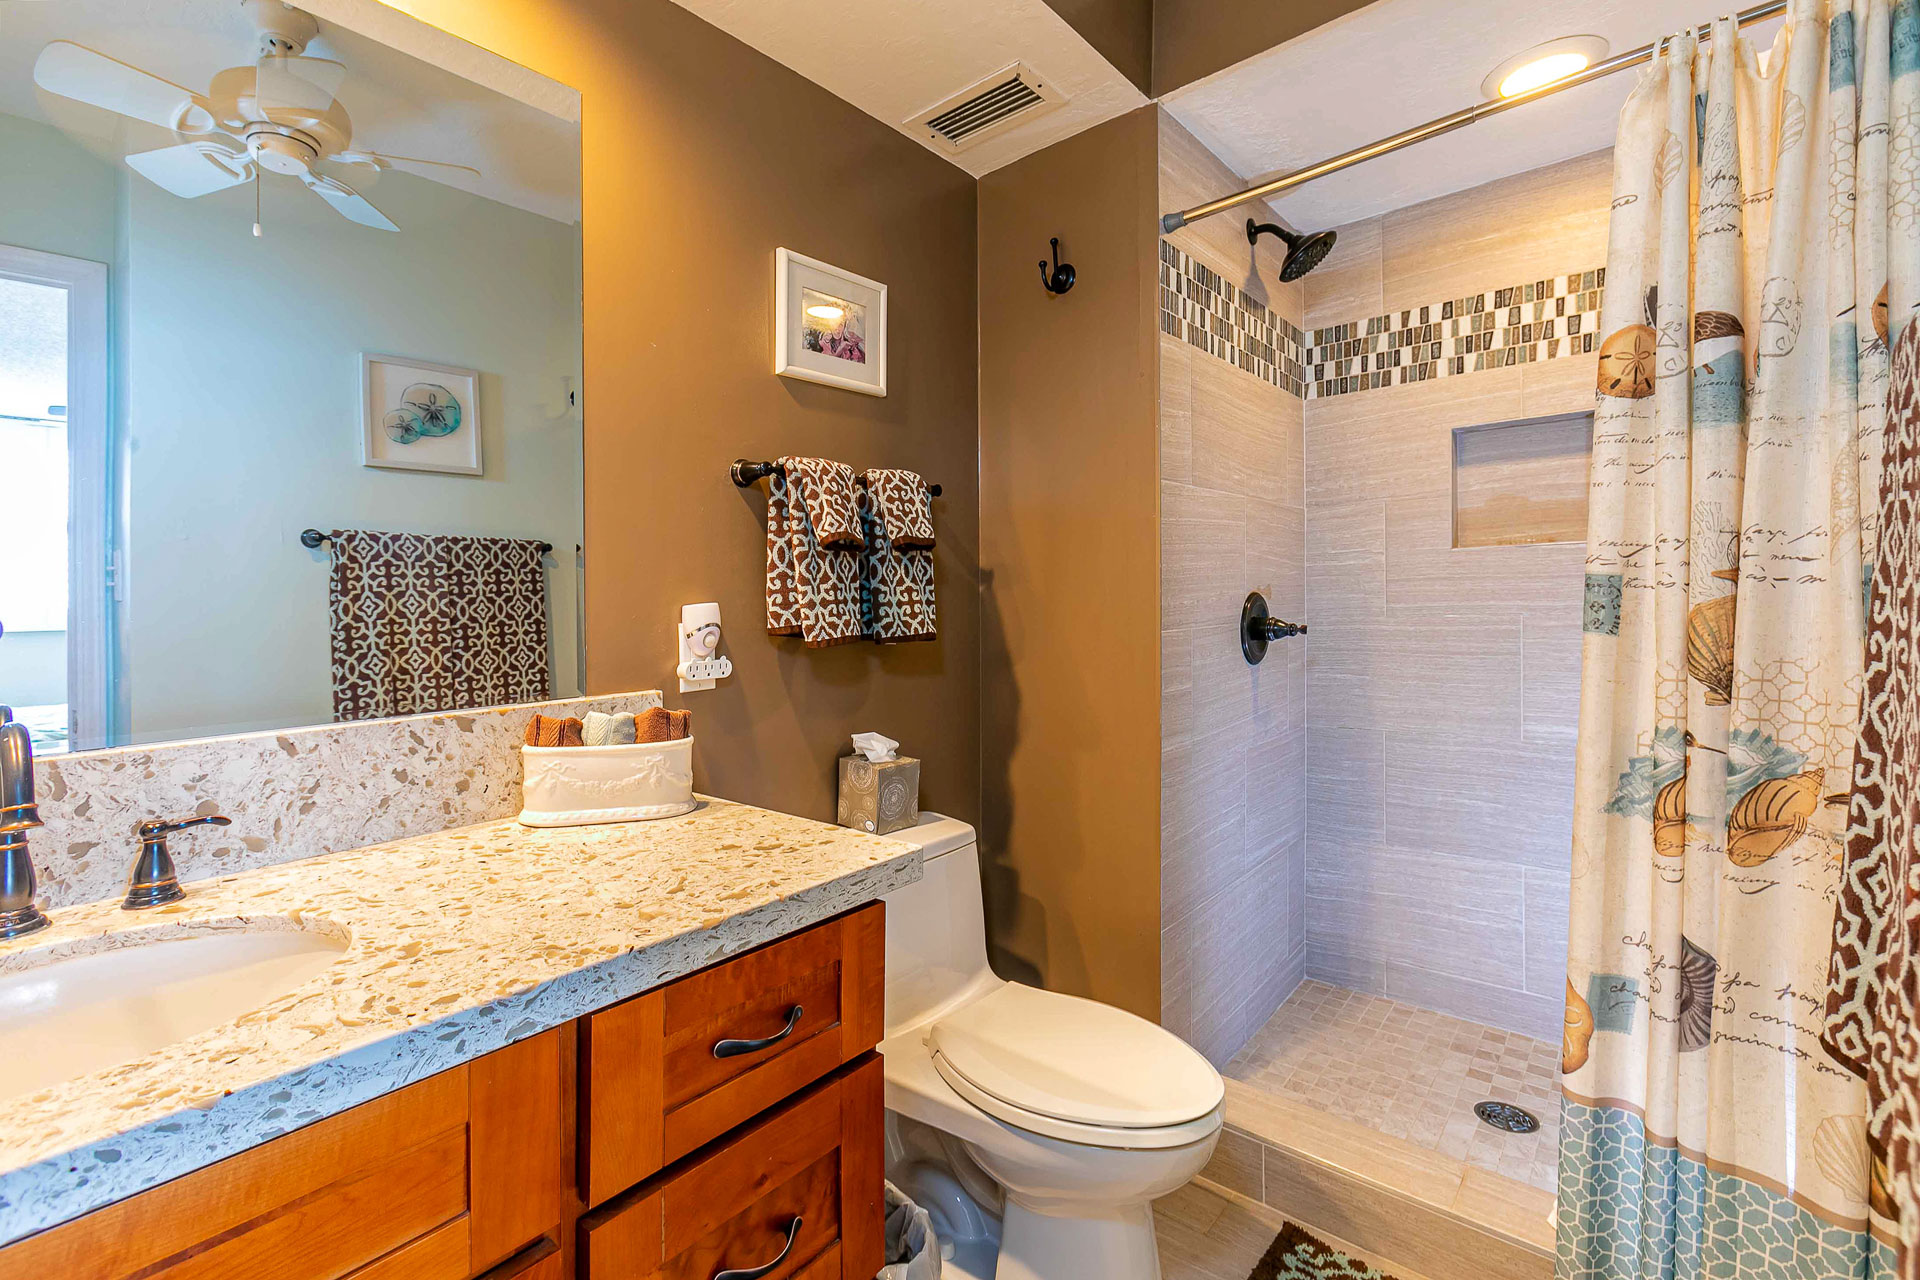 Master suite bathroom. Fully remodeled with walk-in shower and removable shower head